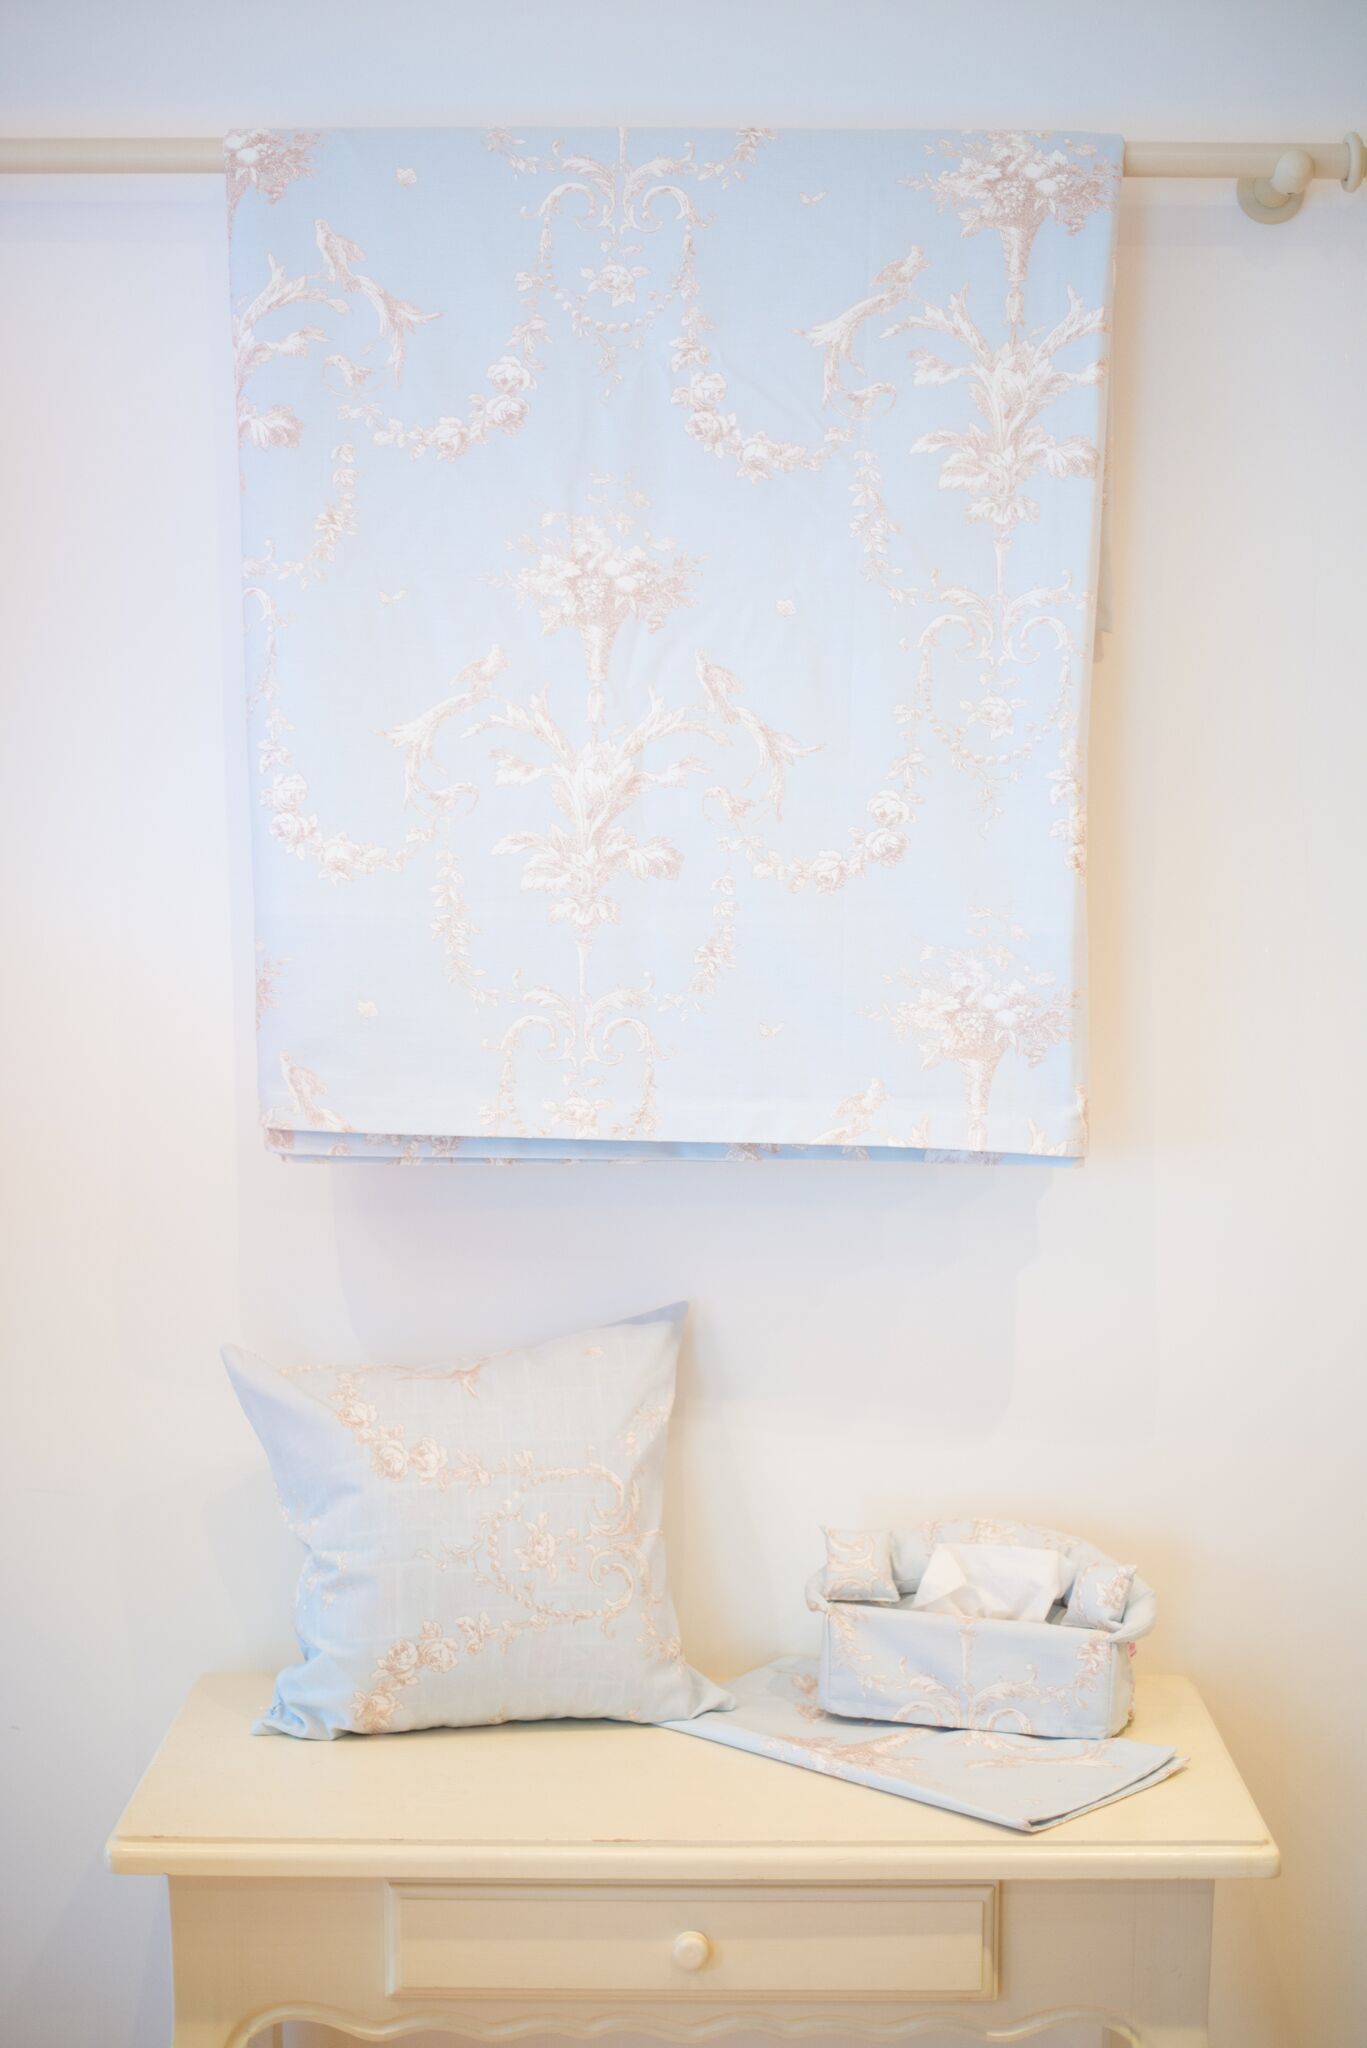 Pale blue floral bedspread and cushions